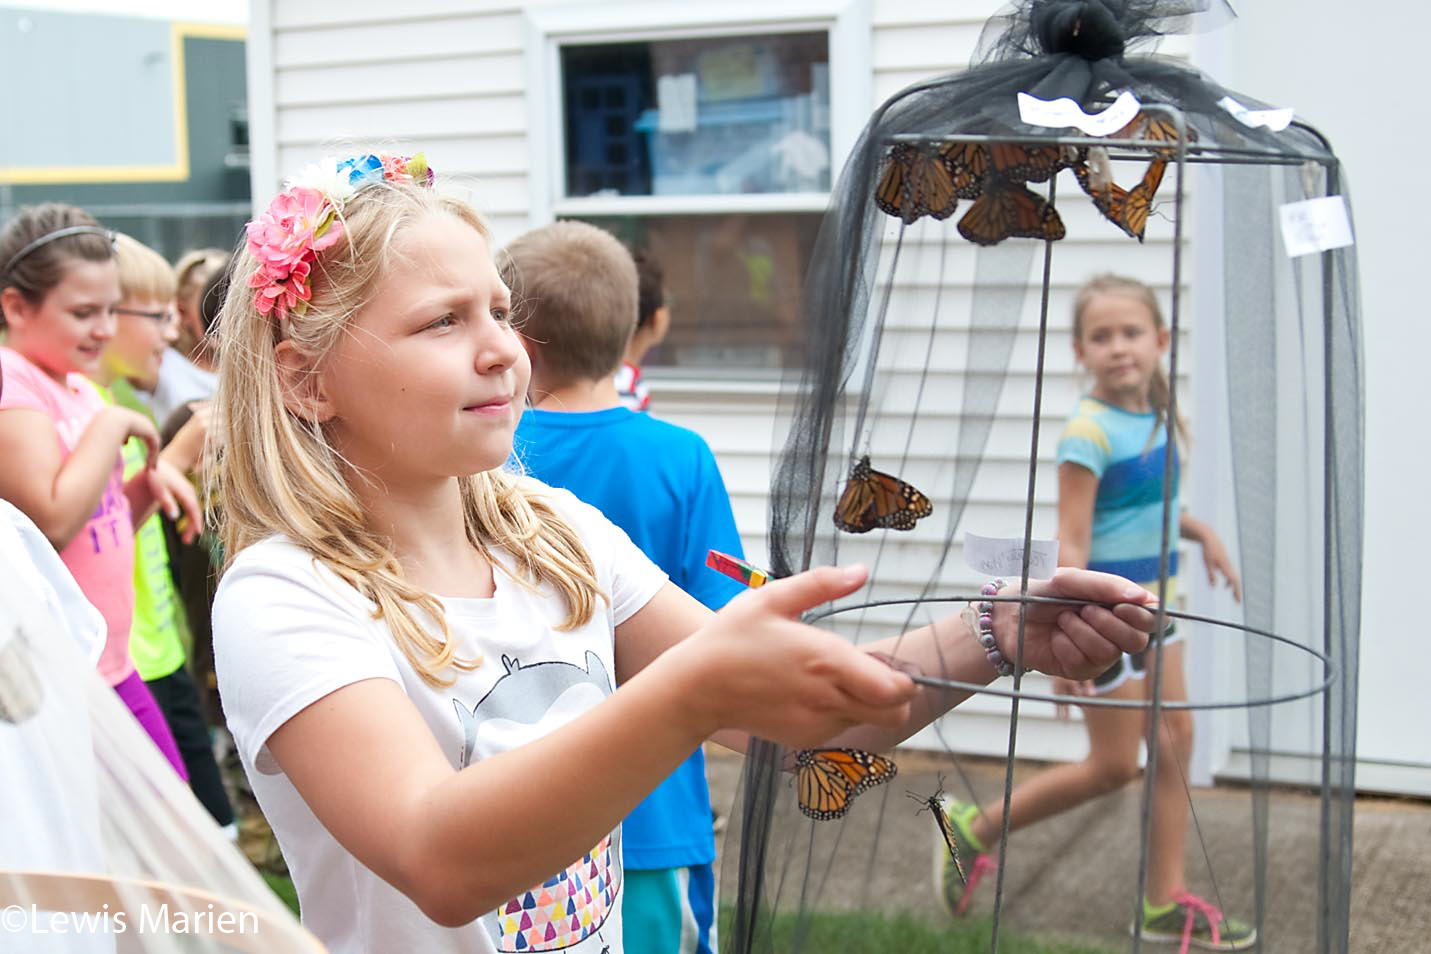 Bailey Ripka, 9, carries a basket filled with monarch butterflies near Gale Elementary School in Galesburg, Ill., on Sept. 8. Students at the school released more than 70 monarch butterflies which are migrating to Mexico for the winter.